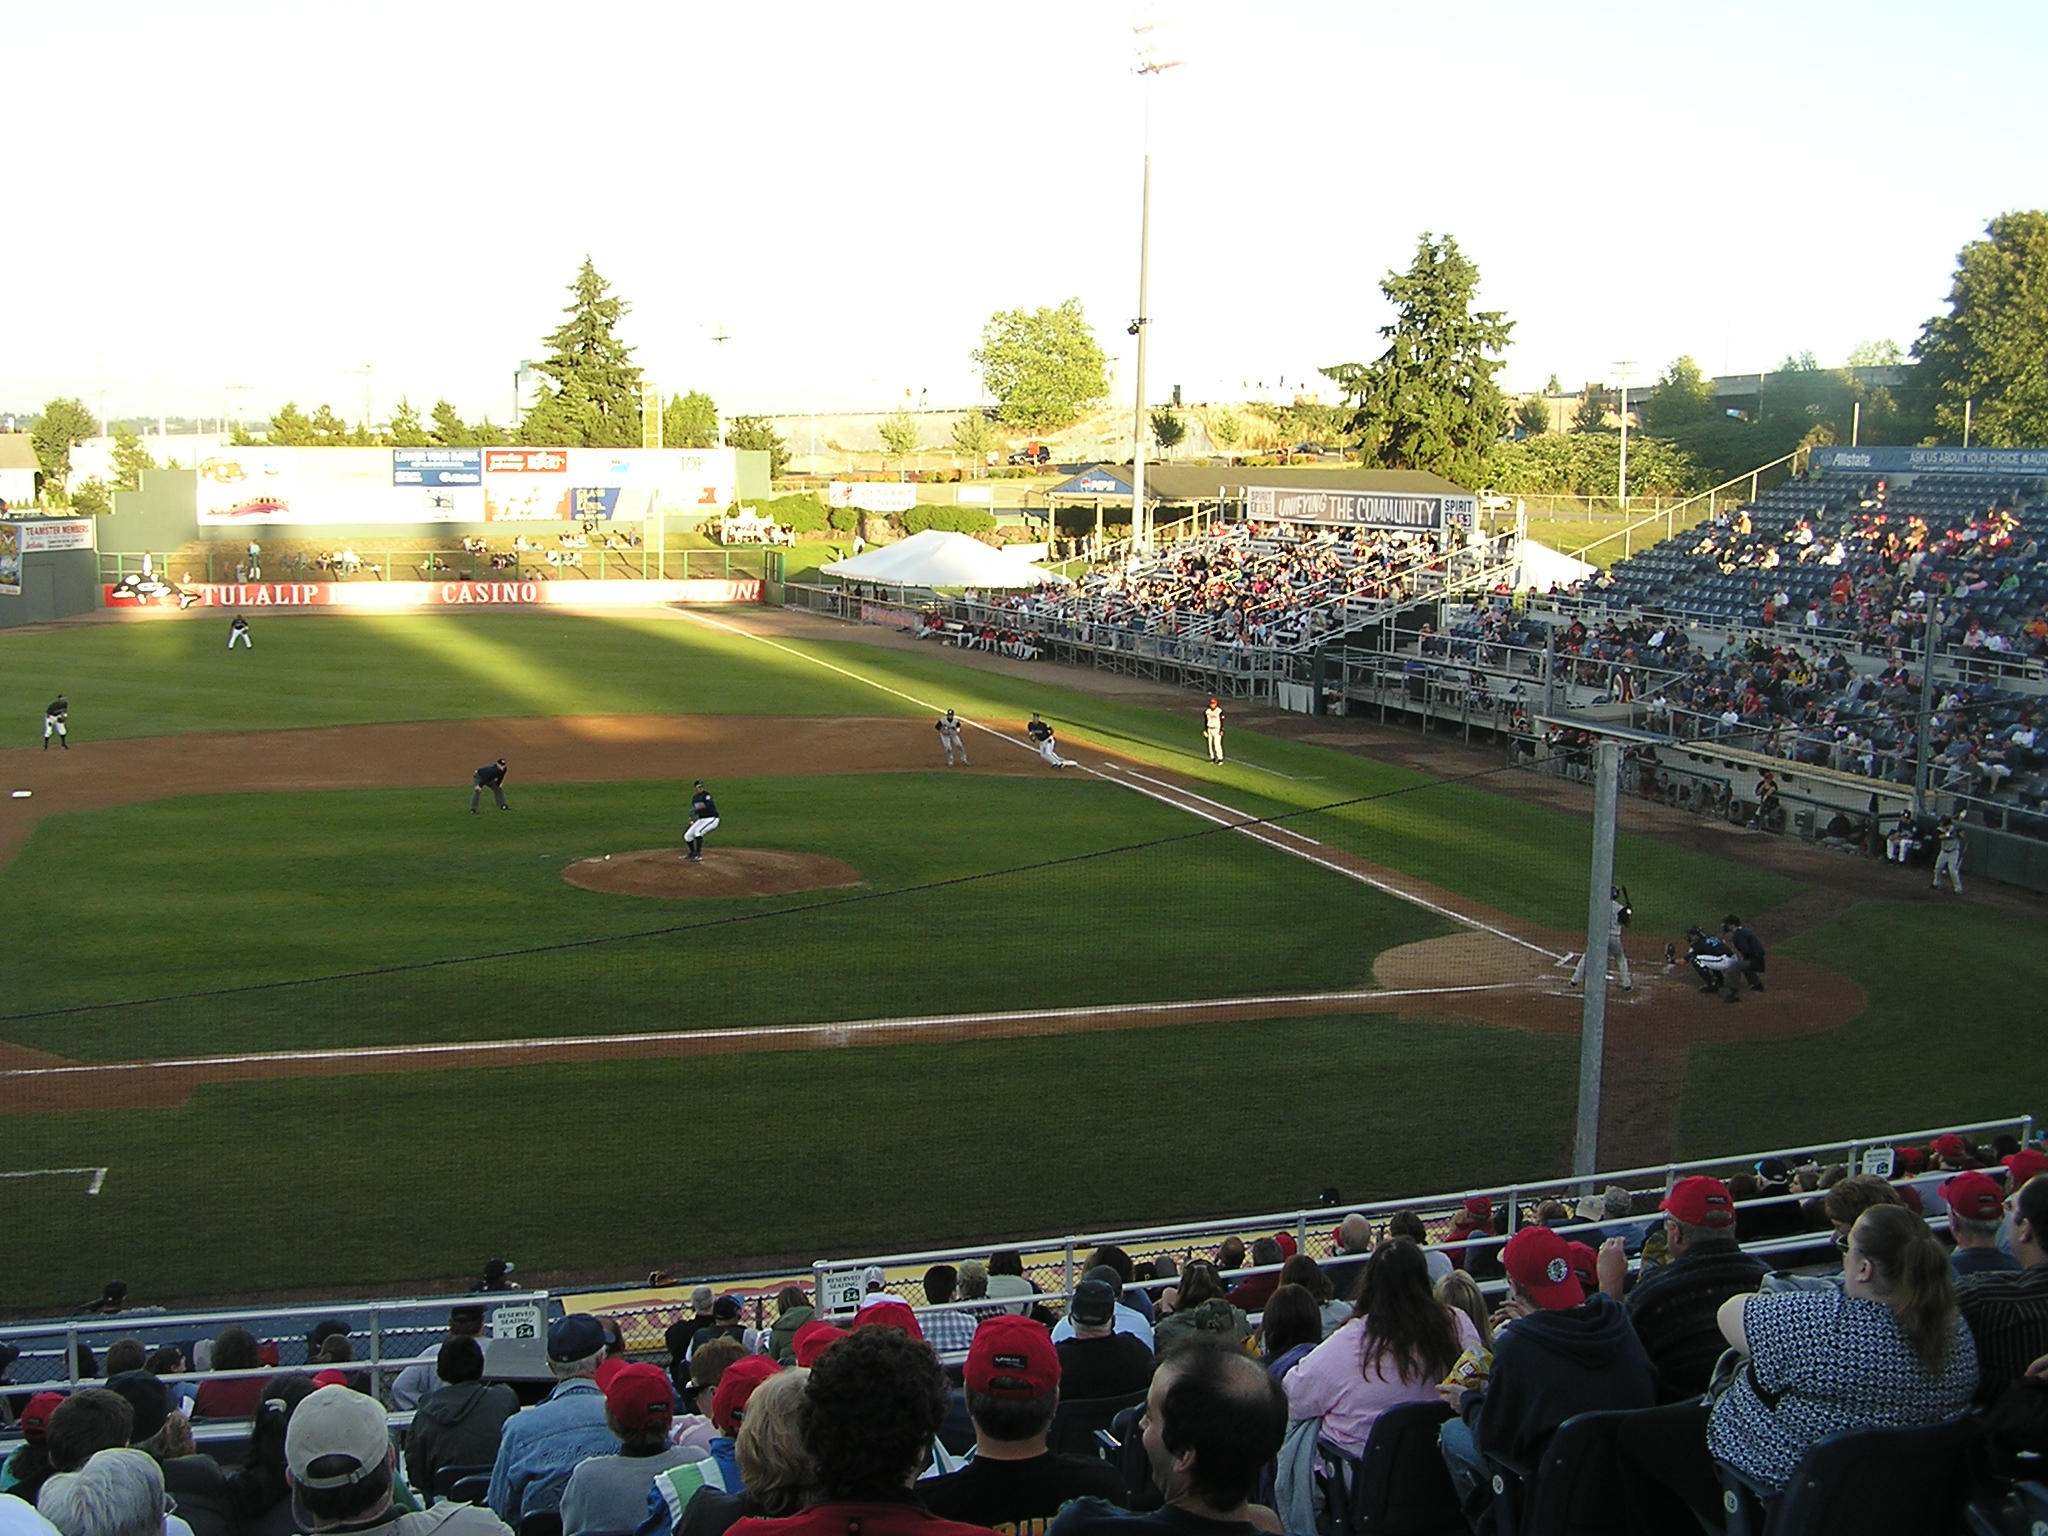 A view from the 3rd base side - Everett Washington